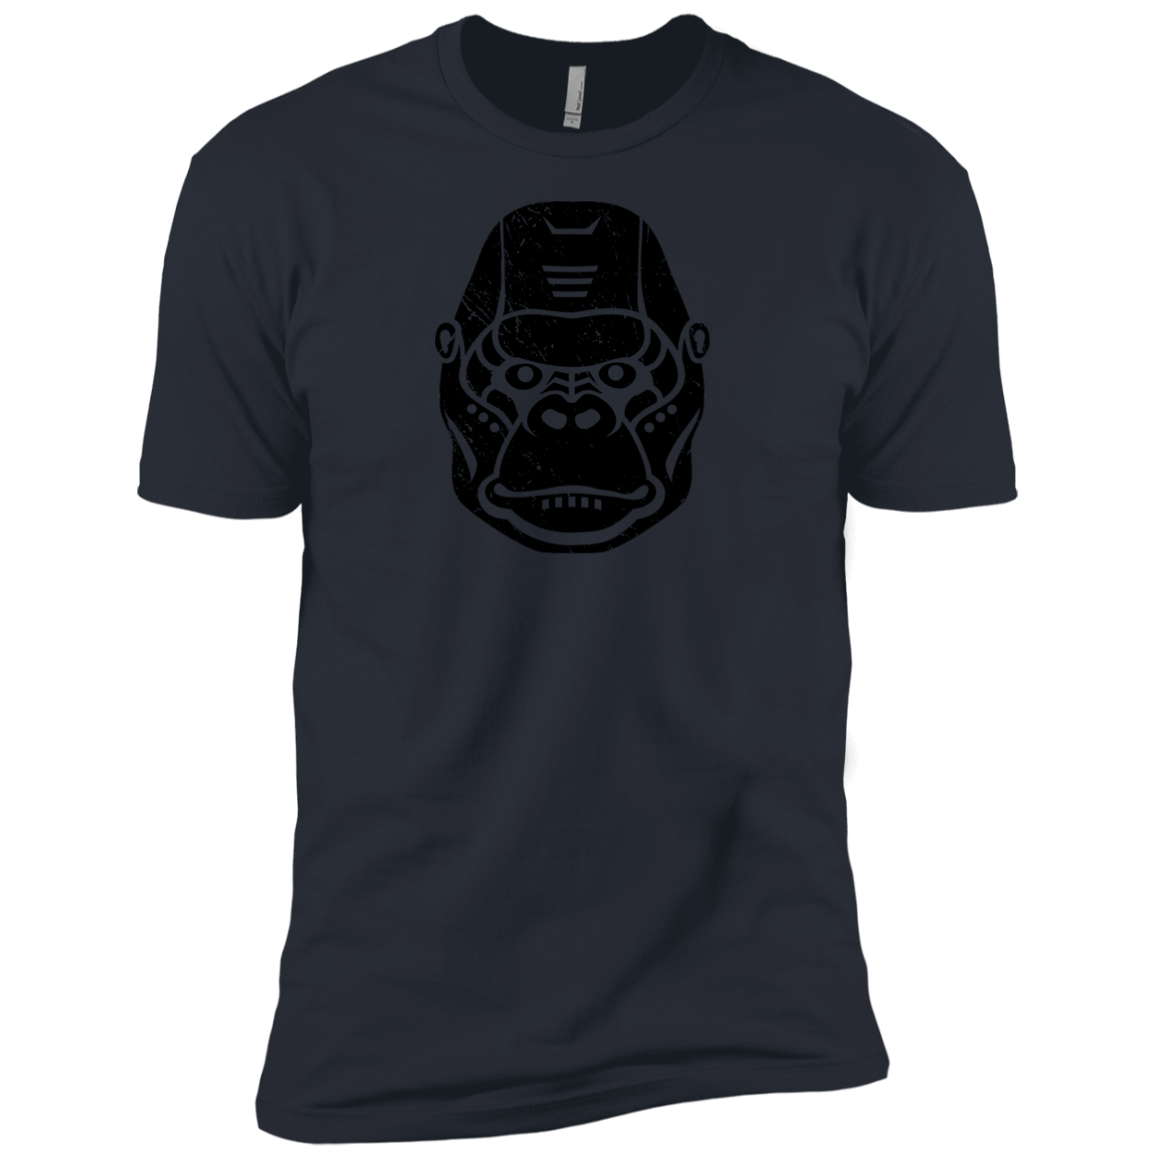 Black Distressed Emblem (Gorilla/Knuckles) - Dark Corps